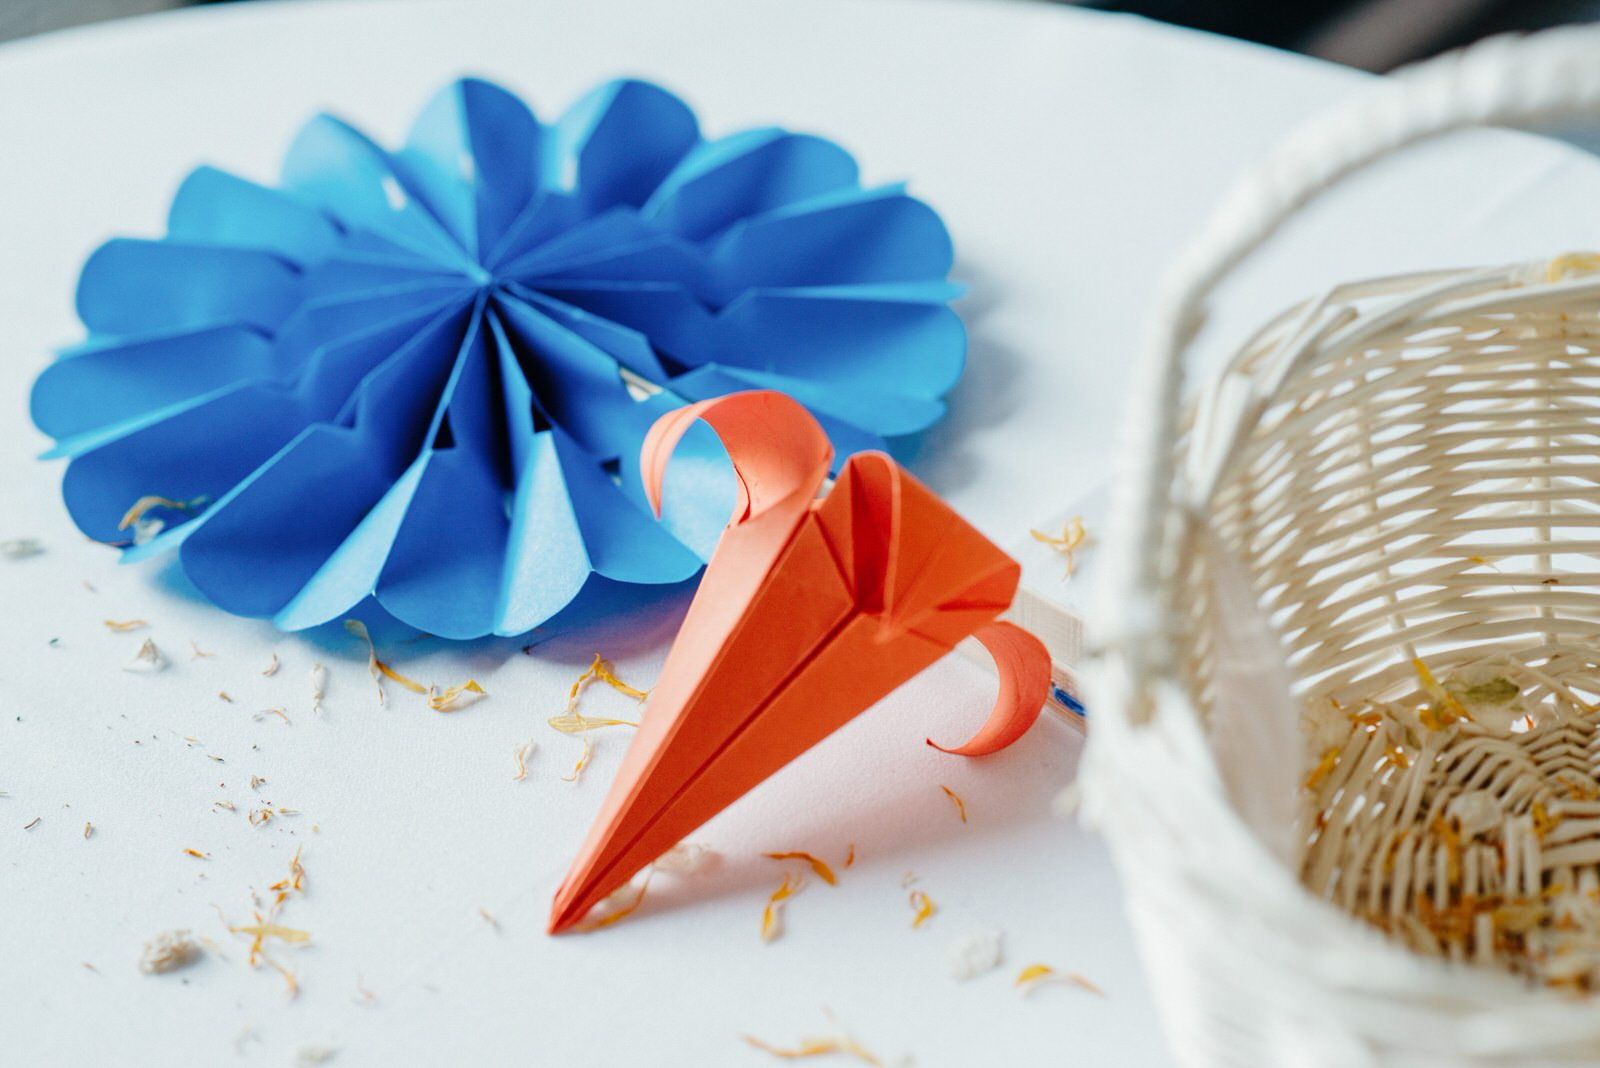 Blue and orange paper origami decor details at a Cardiff wedding